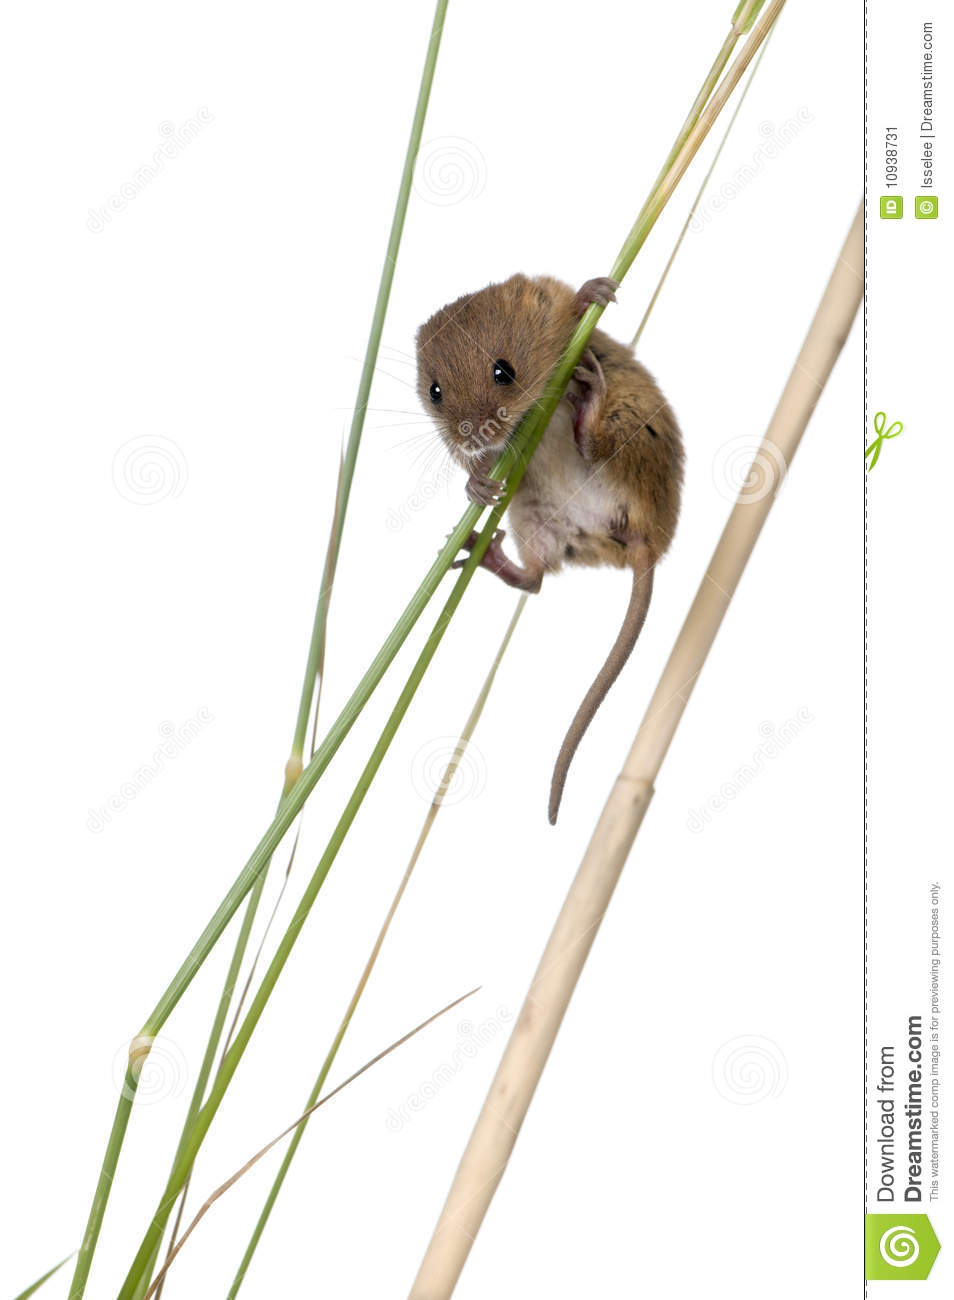 Harvest Mouse clipart #14, Download drawings